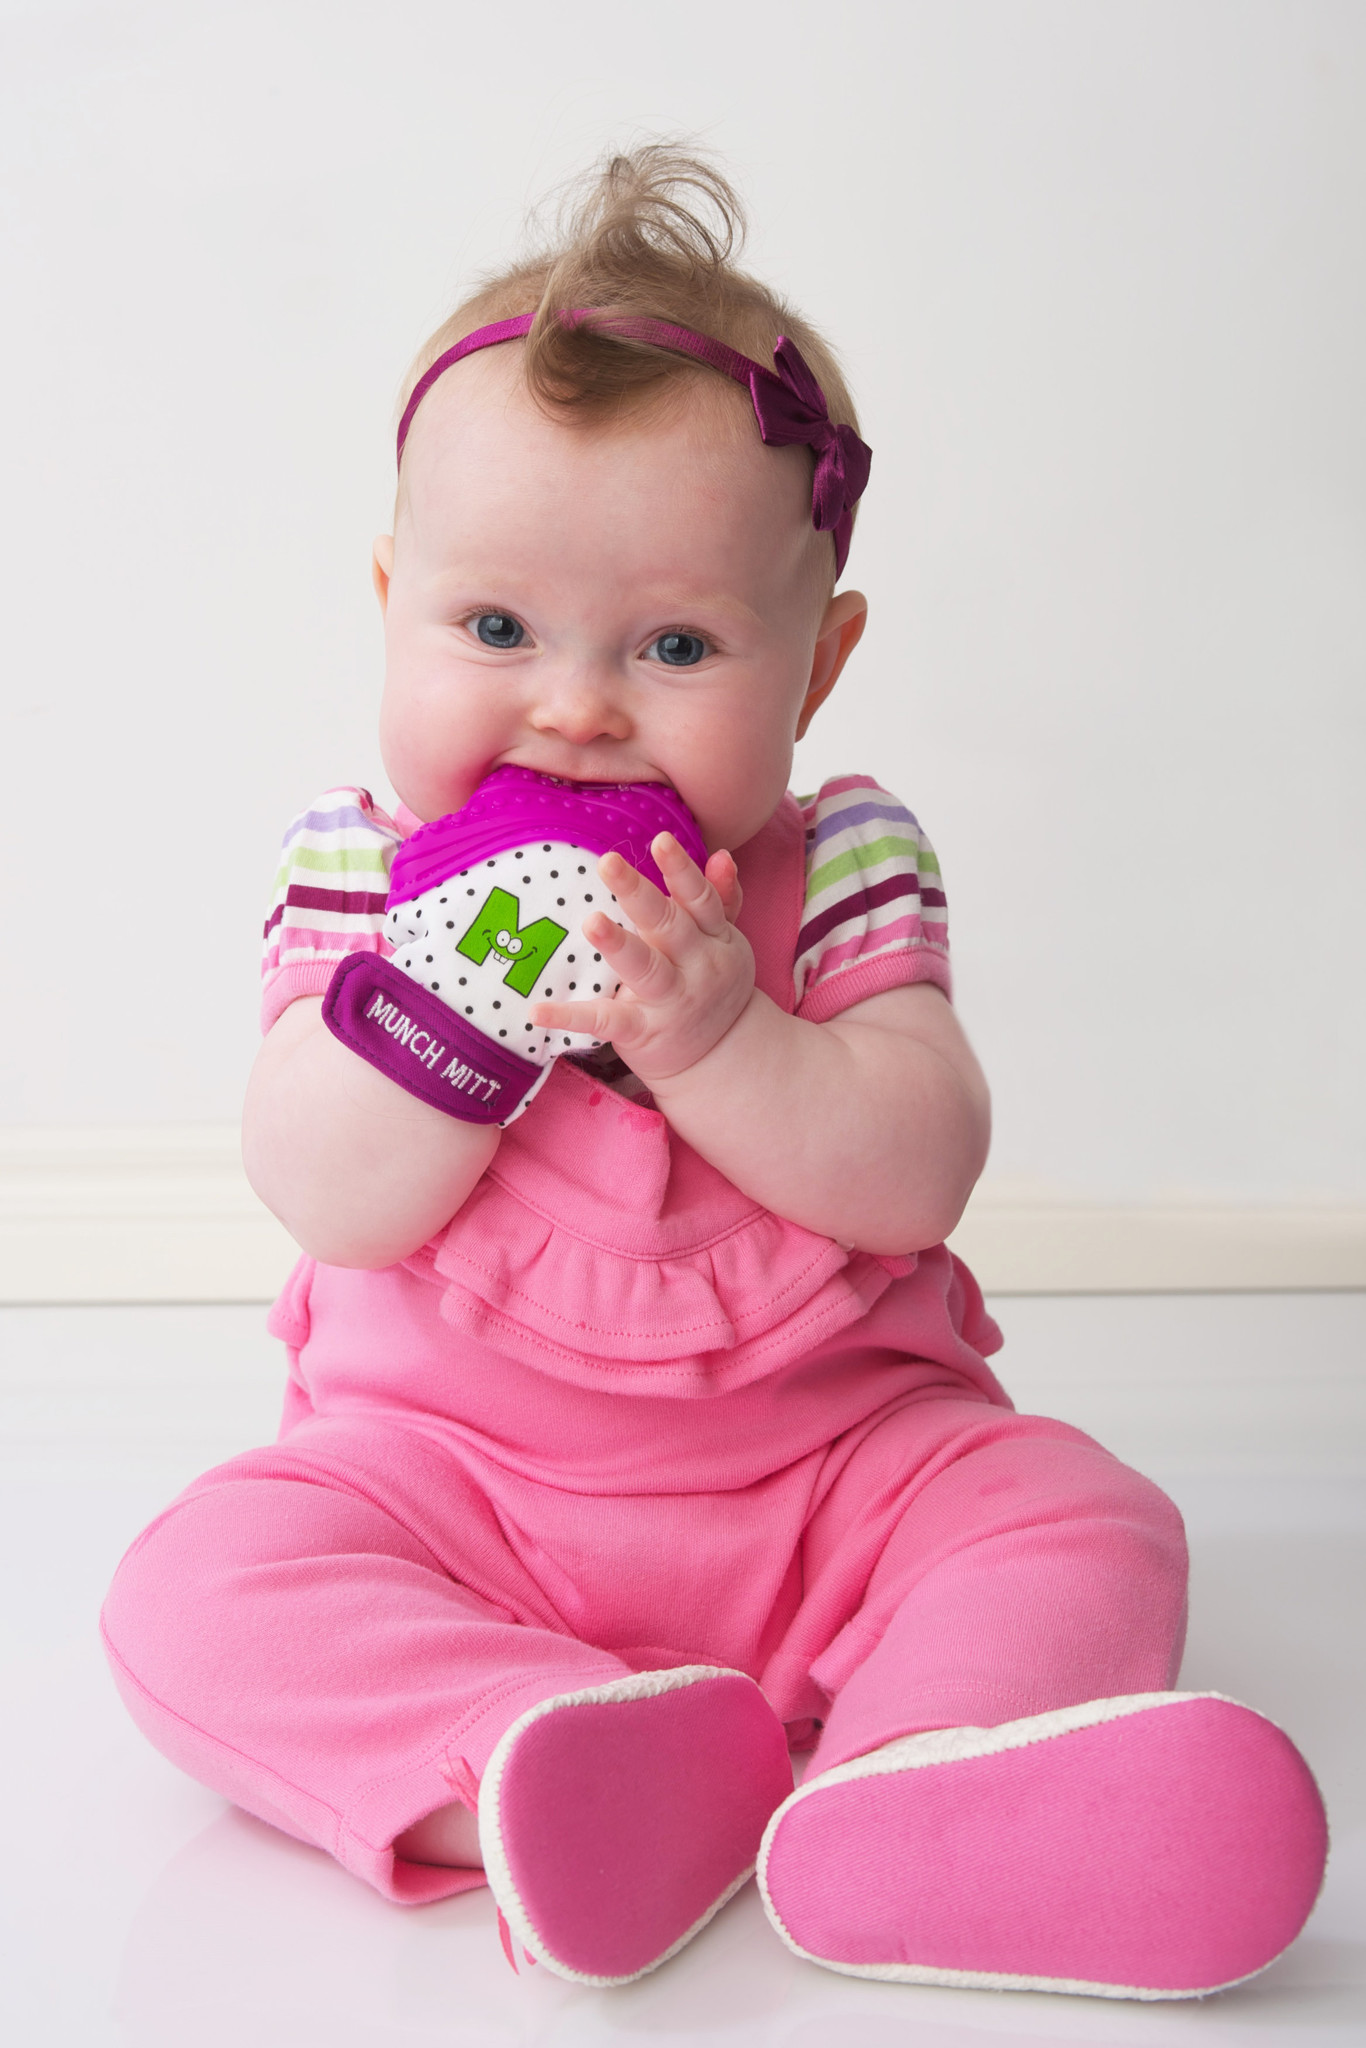 Munch Mitt Teether in Pink